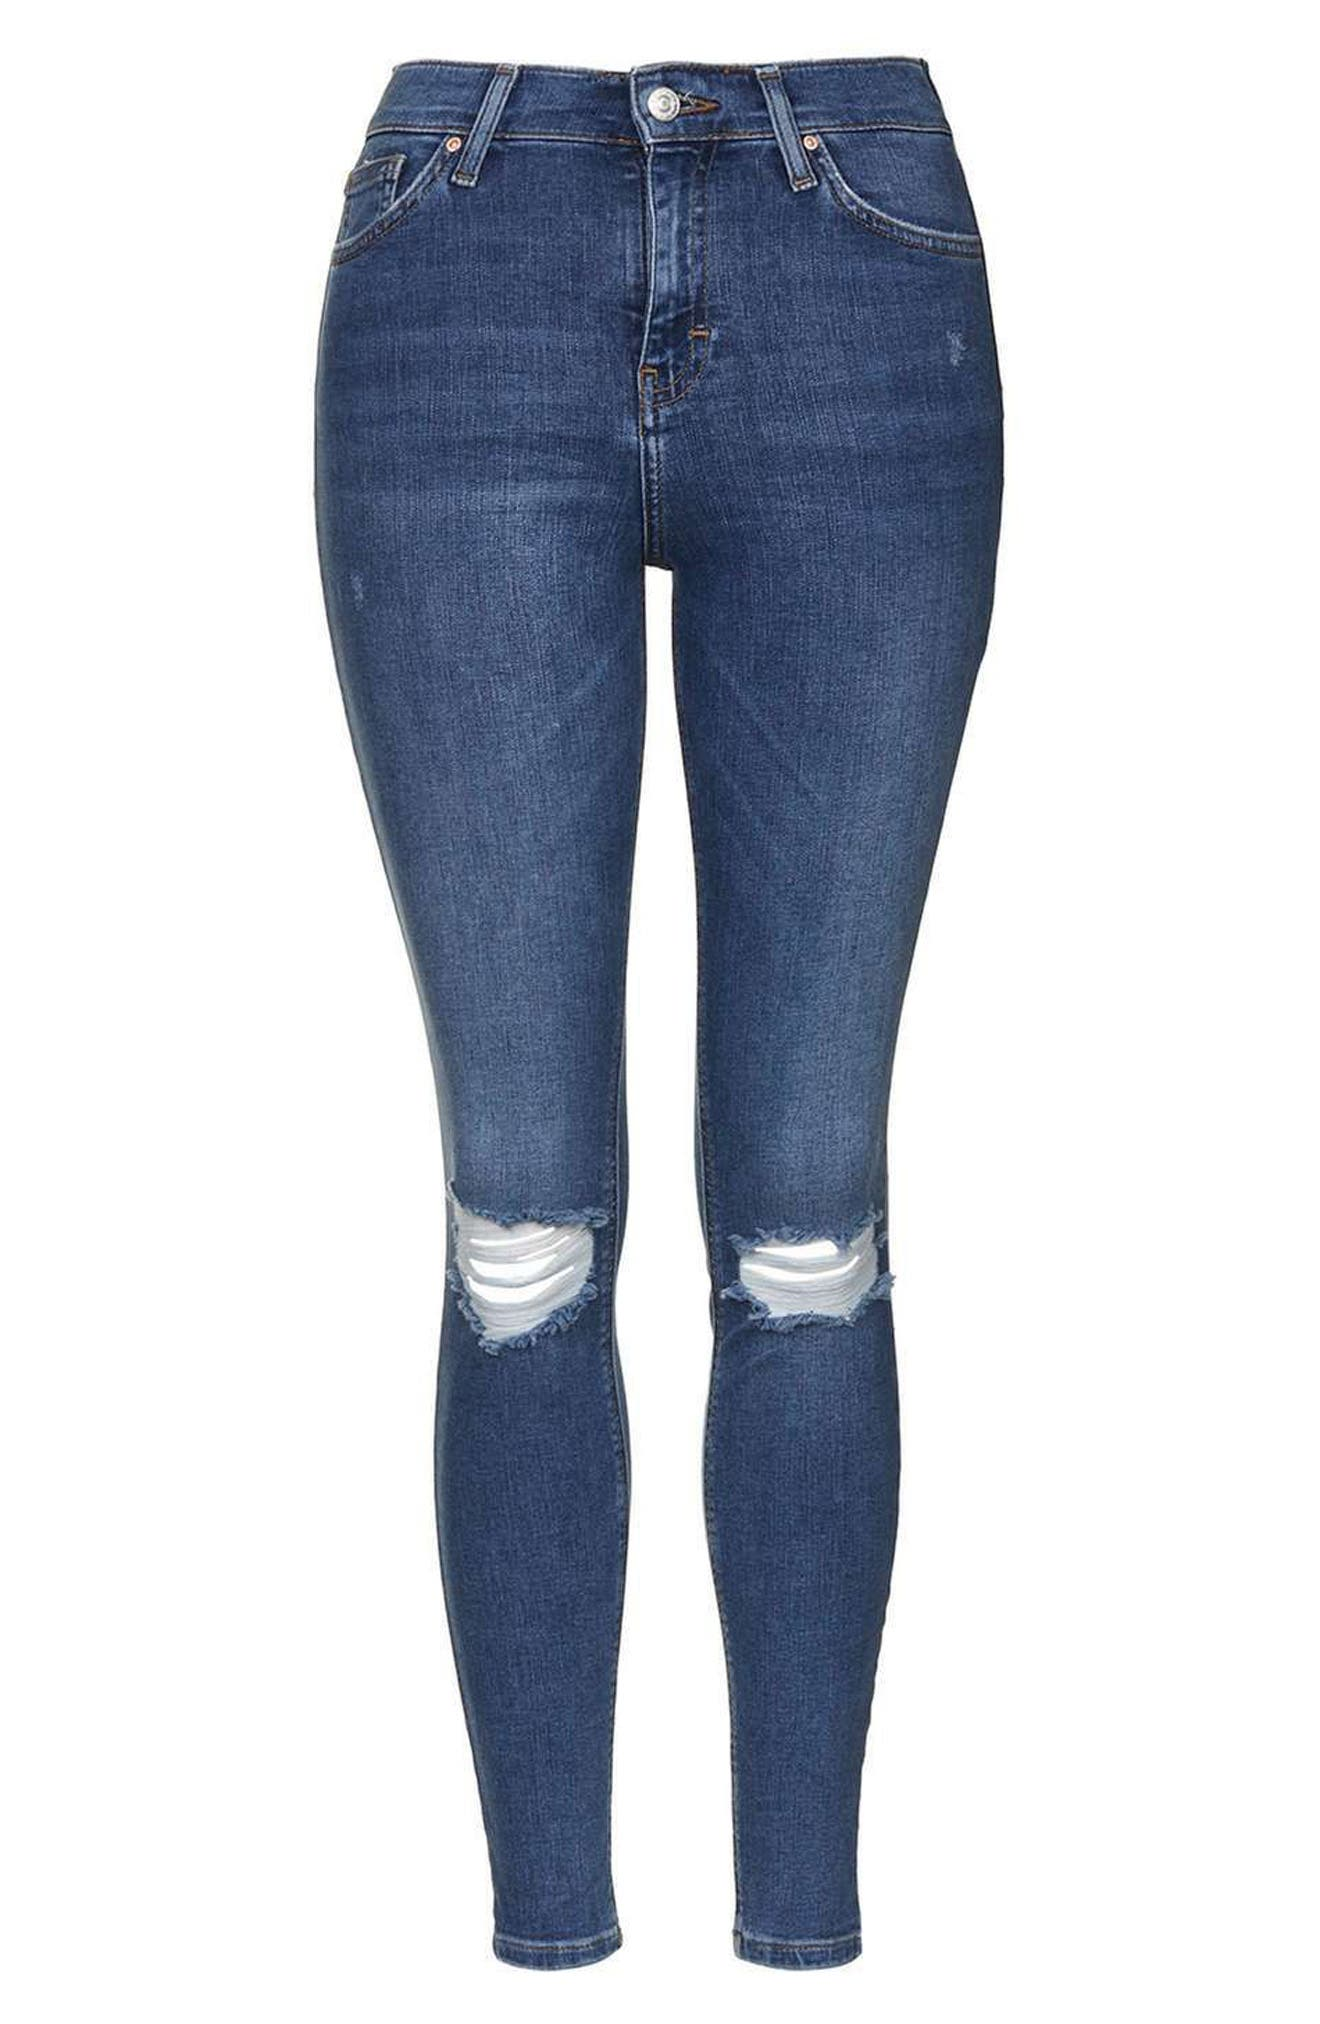 Jamie Rip High Waist Skinny Jeans,                             Alternate thumbnail 5, color,                             420